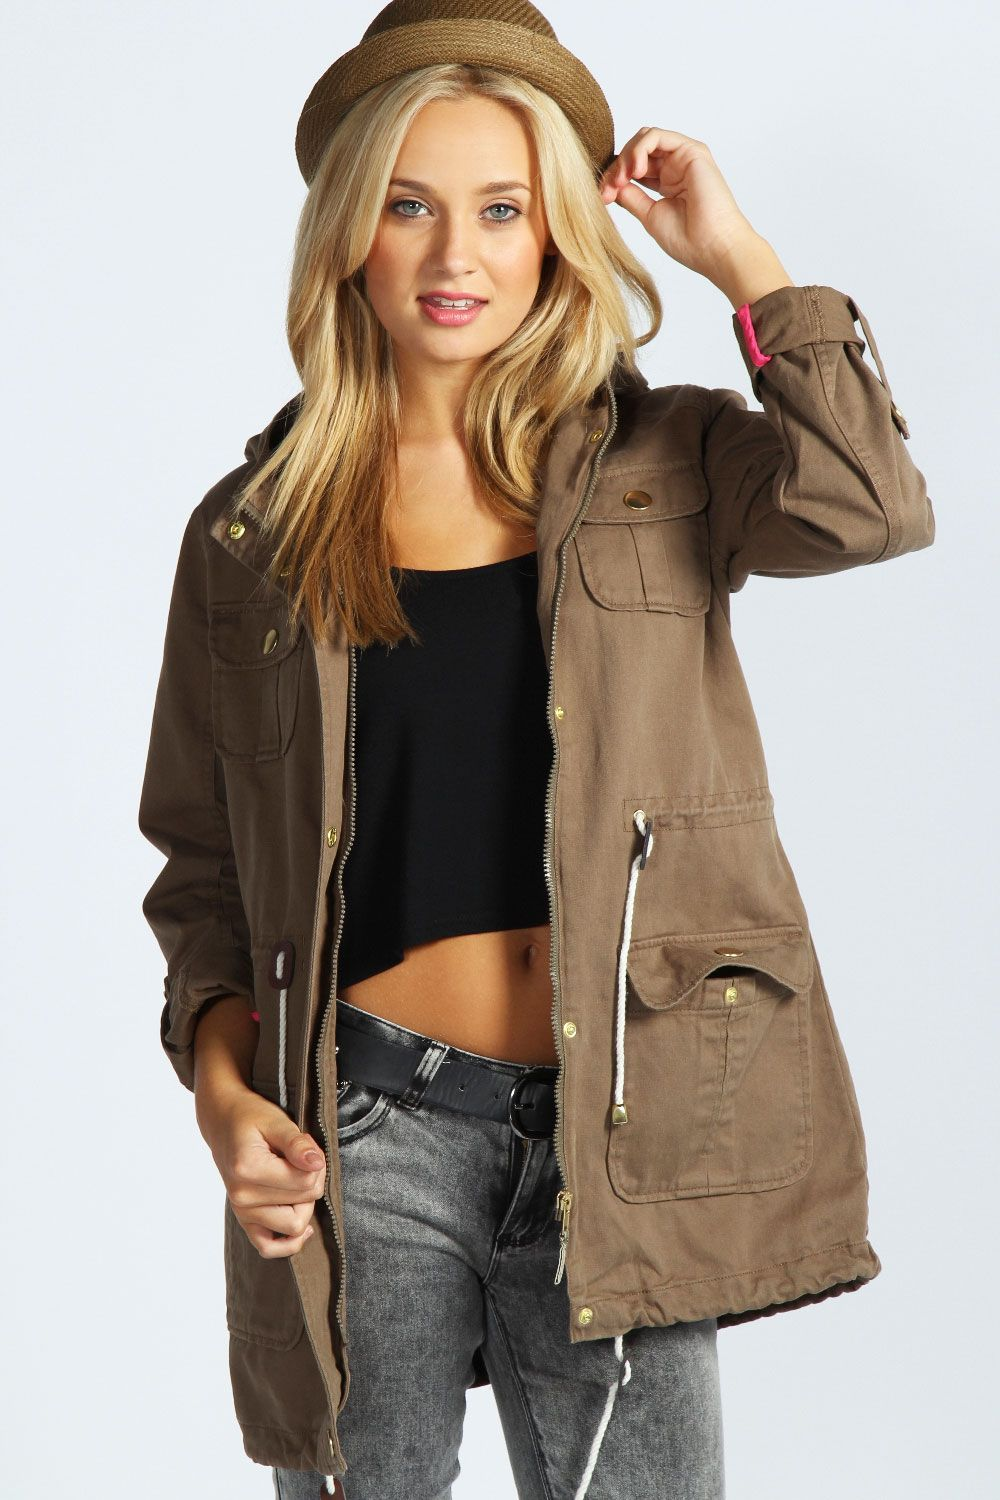 khaki-parka-jacket-for-women | Parka Jacket | Pinterest | Khaki ...